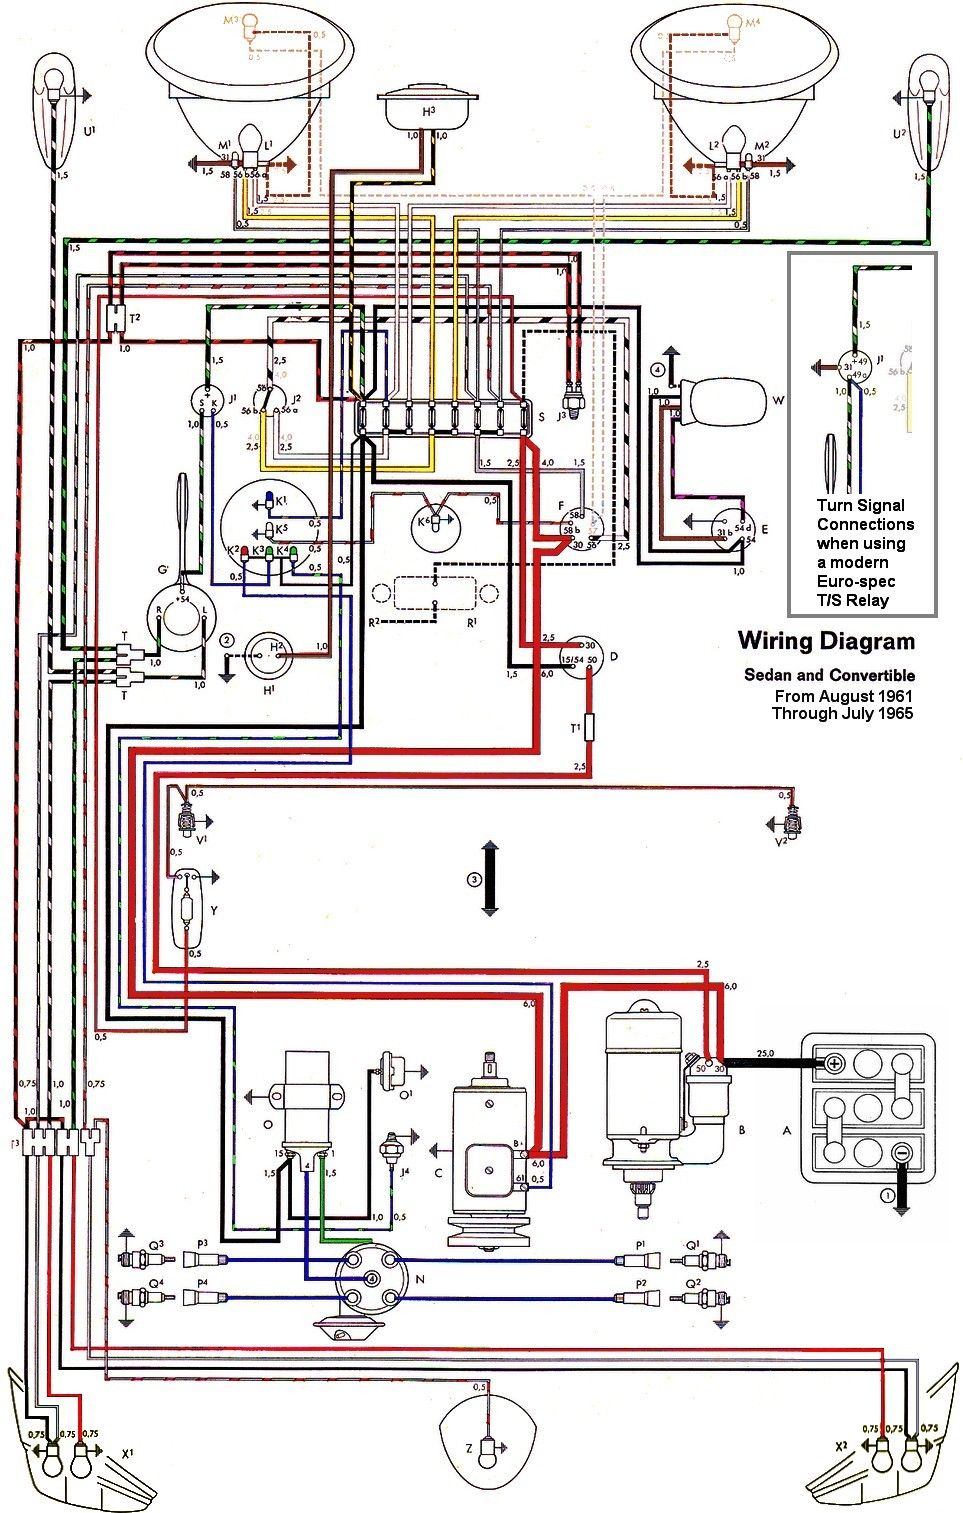 wiring diagram vw beetle sedan and convertible 1961 1965 vw vw beetles volkswagen karmann. Black Bedroom Furniture Sets. Home Design Ideas